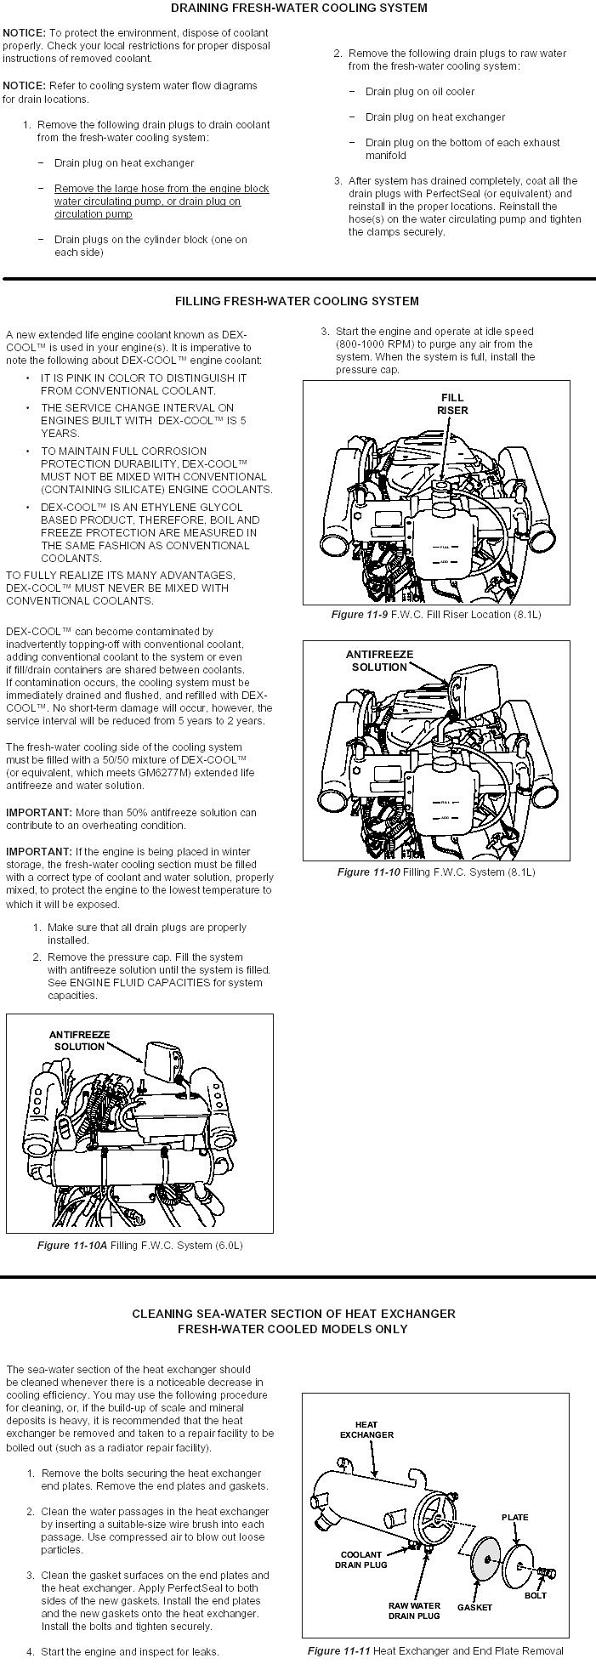 Winterization Procedures Gm Engines Planetnautique Forums Engine Coolant Diagram Drain And Replace The